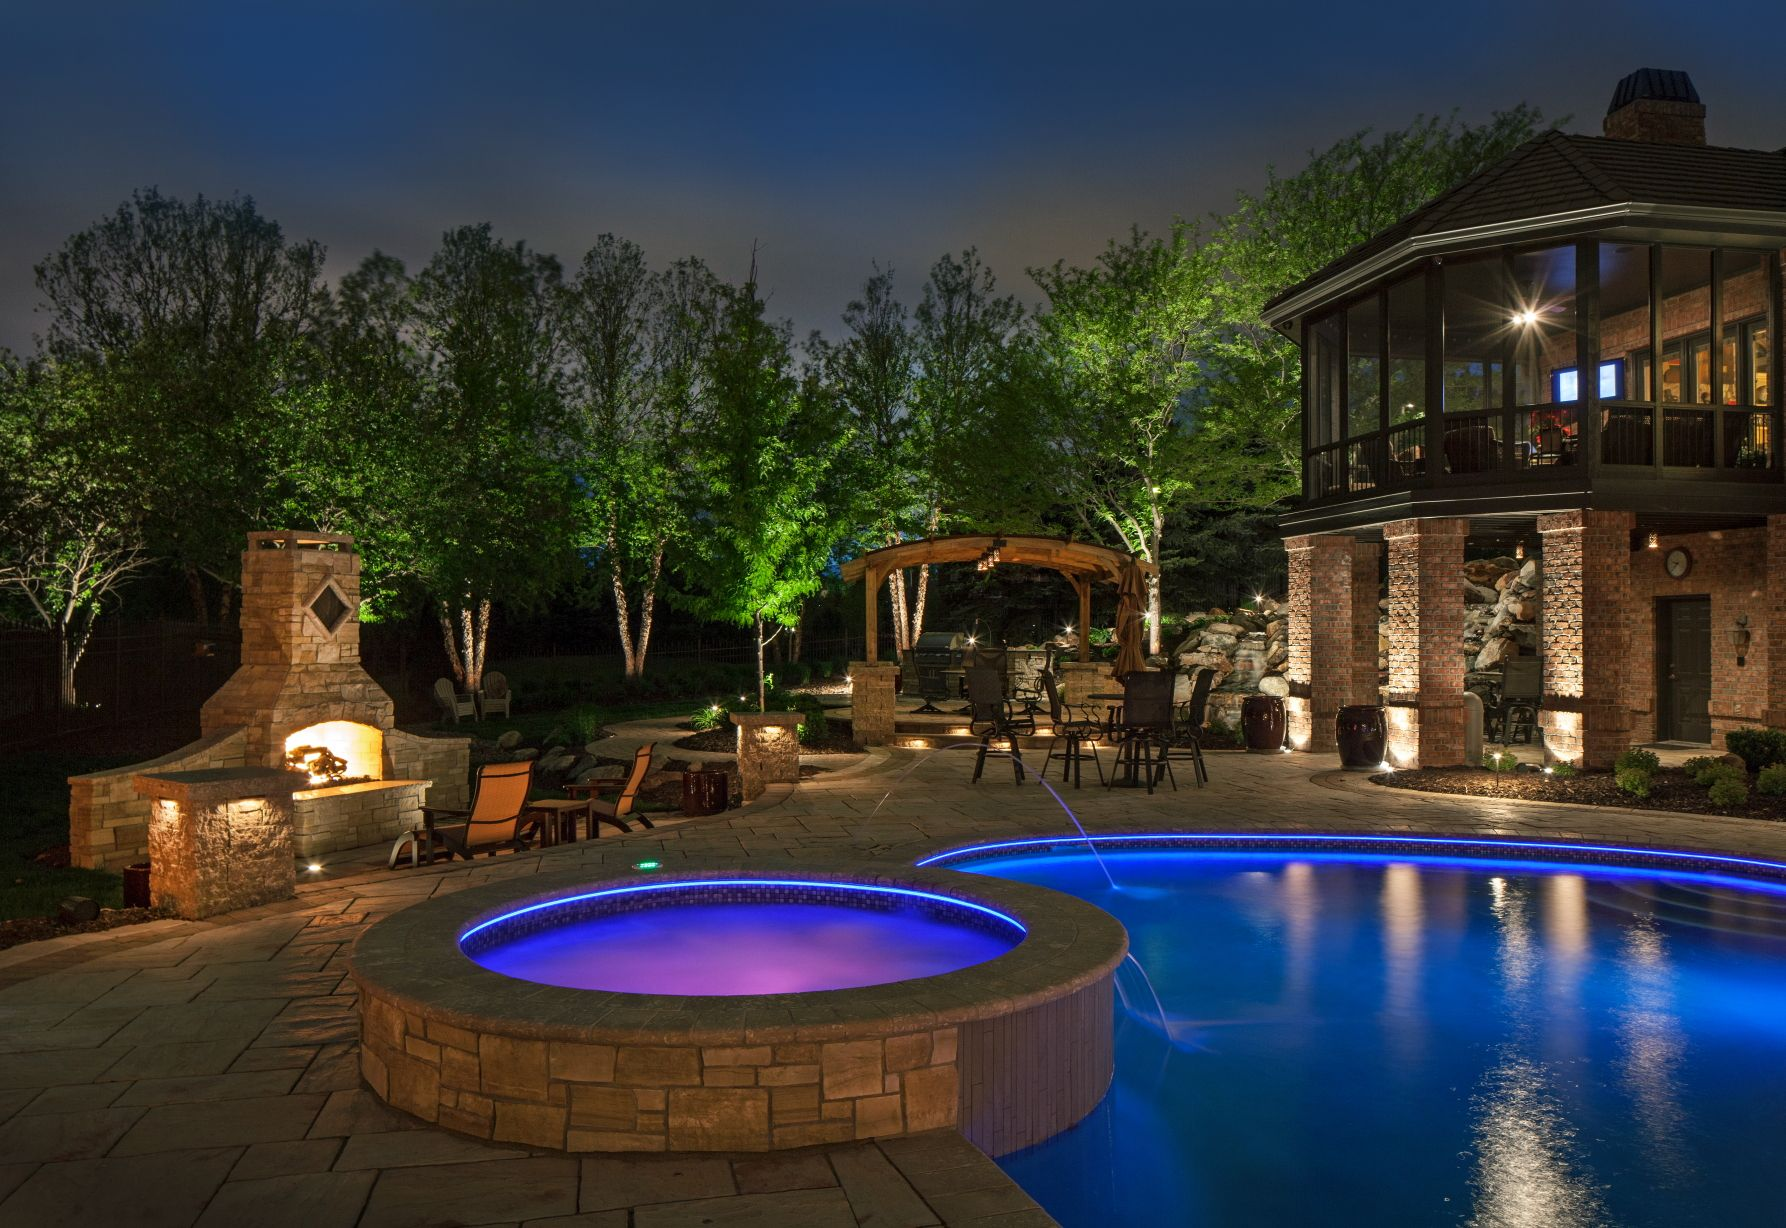 Pool Landscape Lighting Ideas Google Search Landscape Lighting